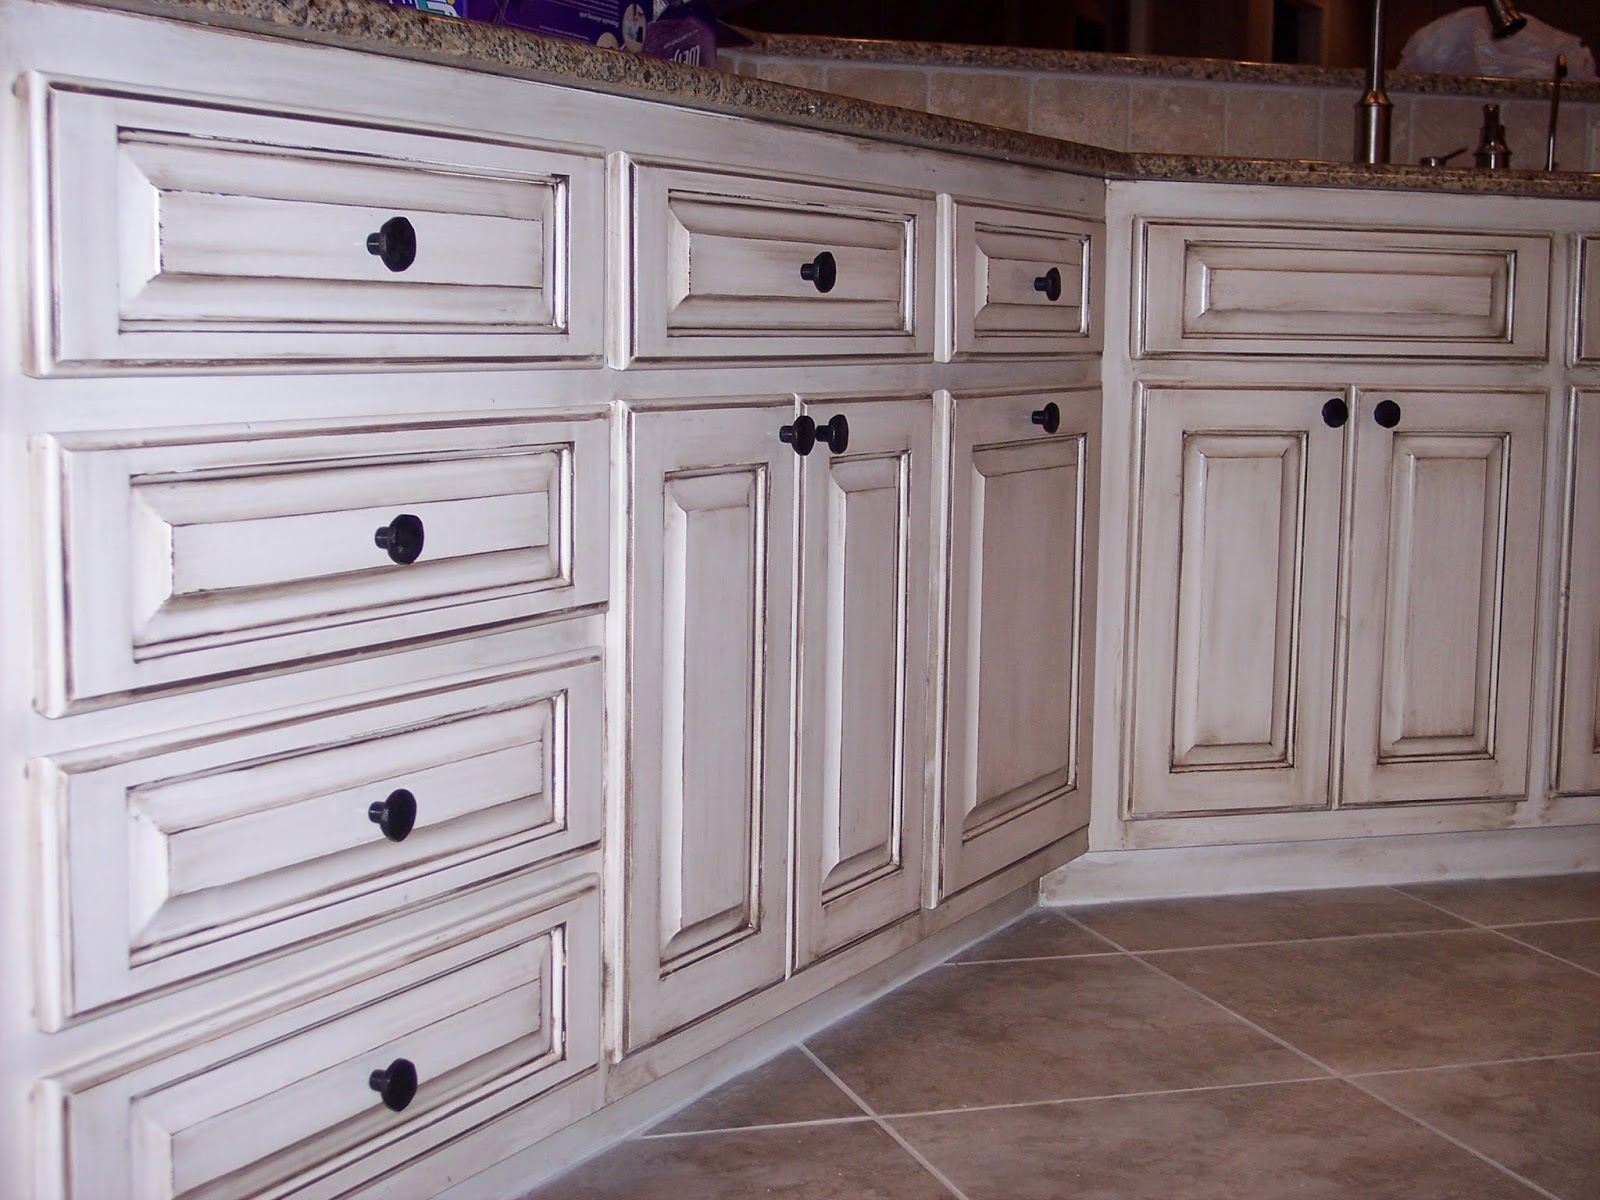 Faux Paint Finishes For Kitchen Cabinets